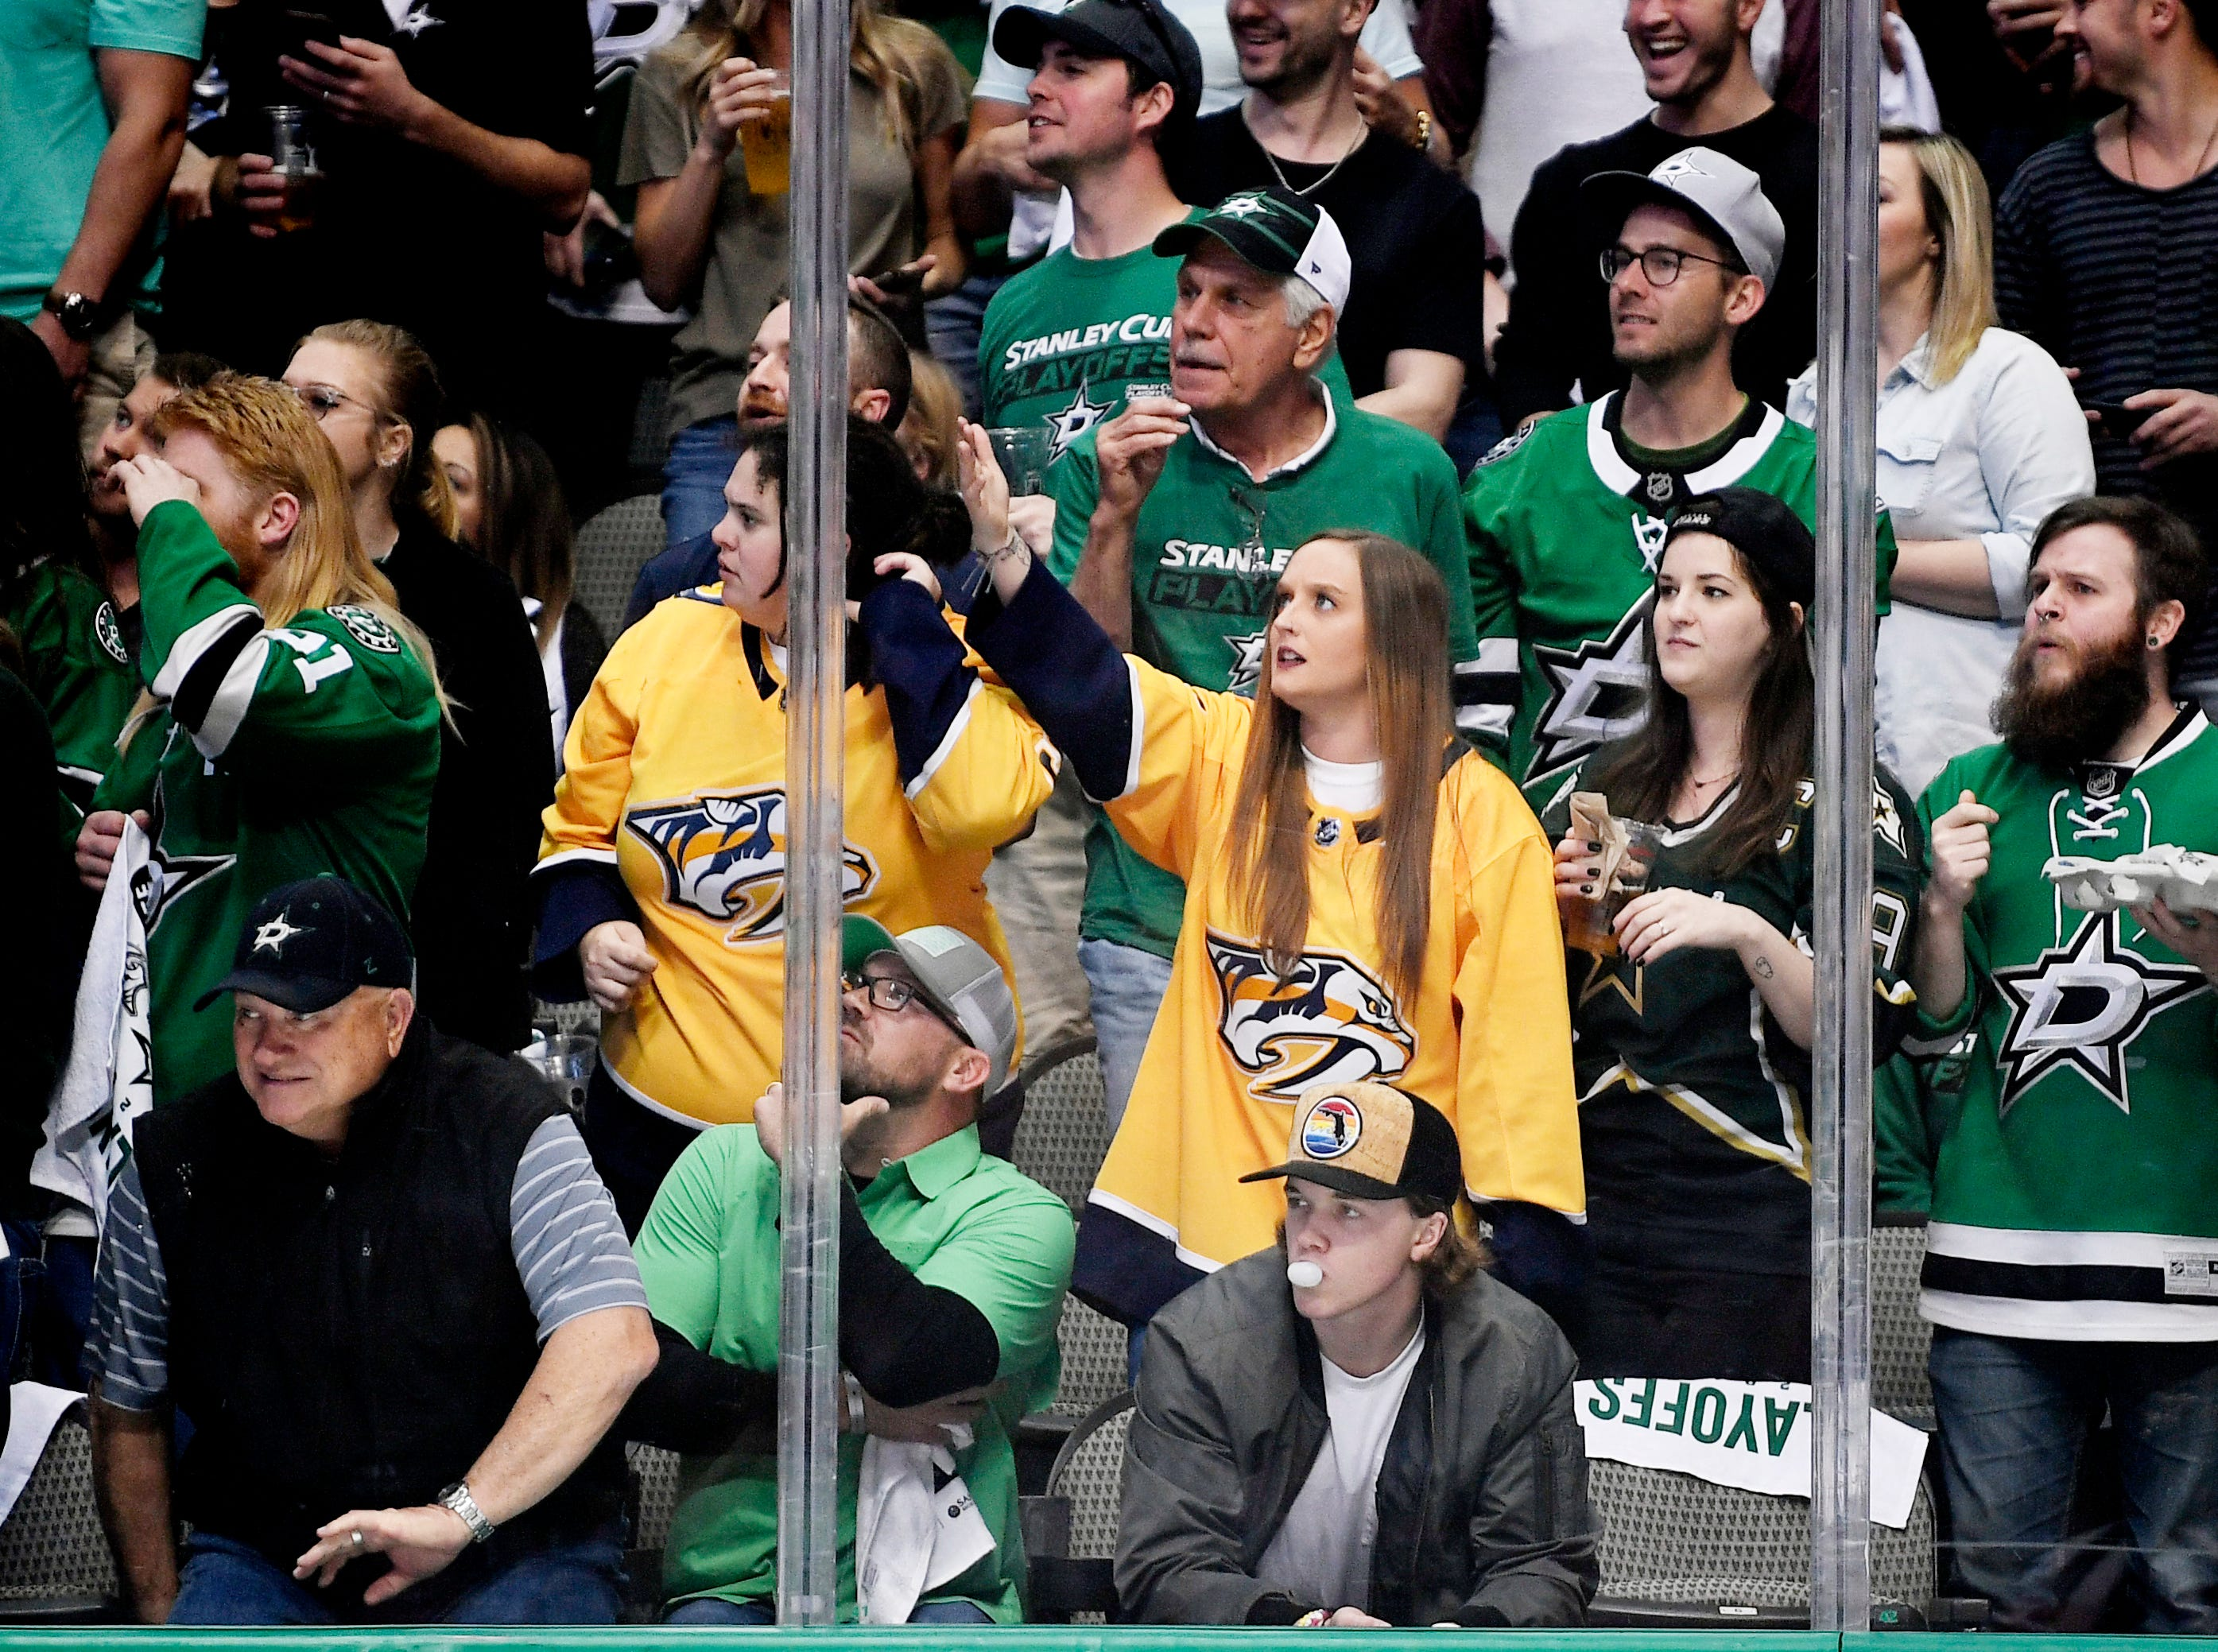 Predators and Stars fans watch the action during the first period of the divisional semifinal game at the American Airlines Center in Dallas, Texas., Monday, April 15, 2019.